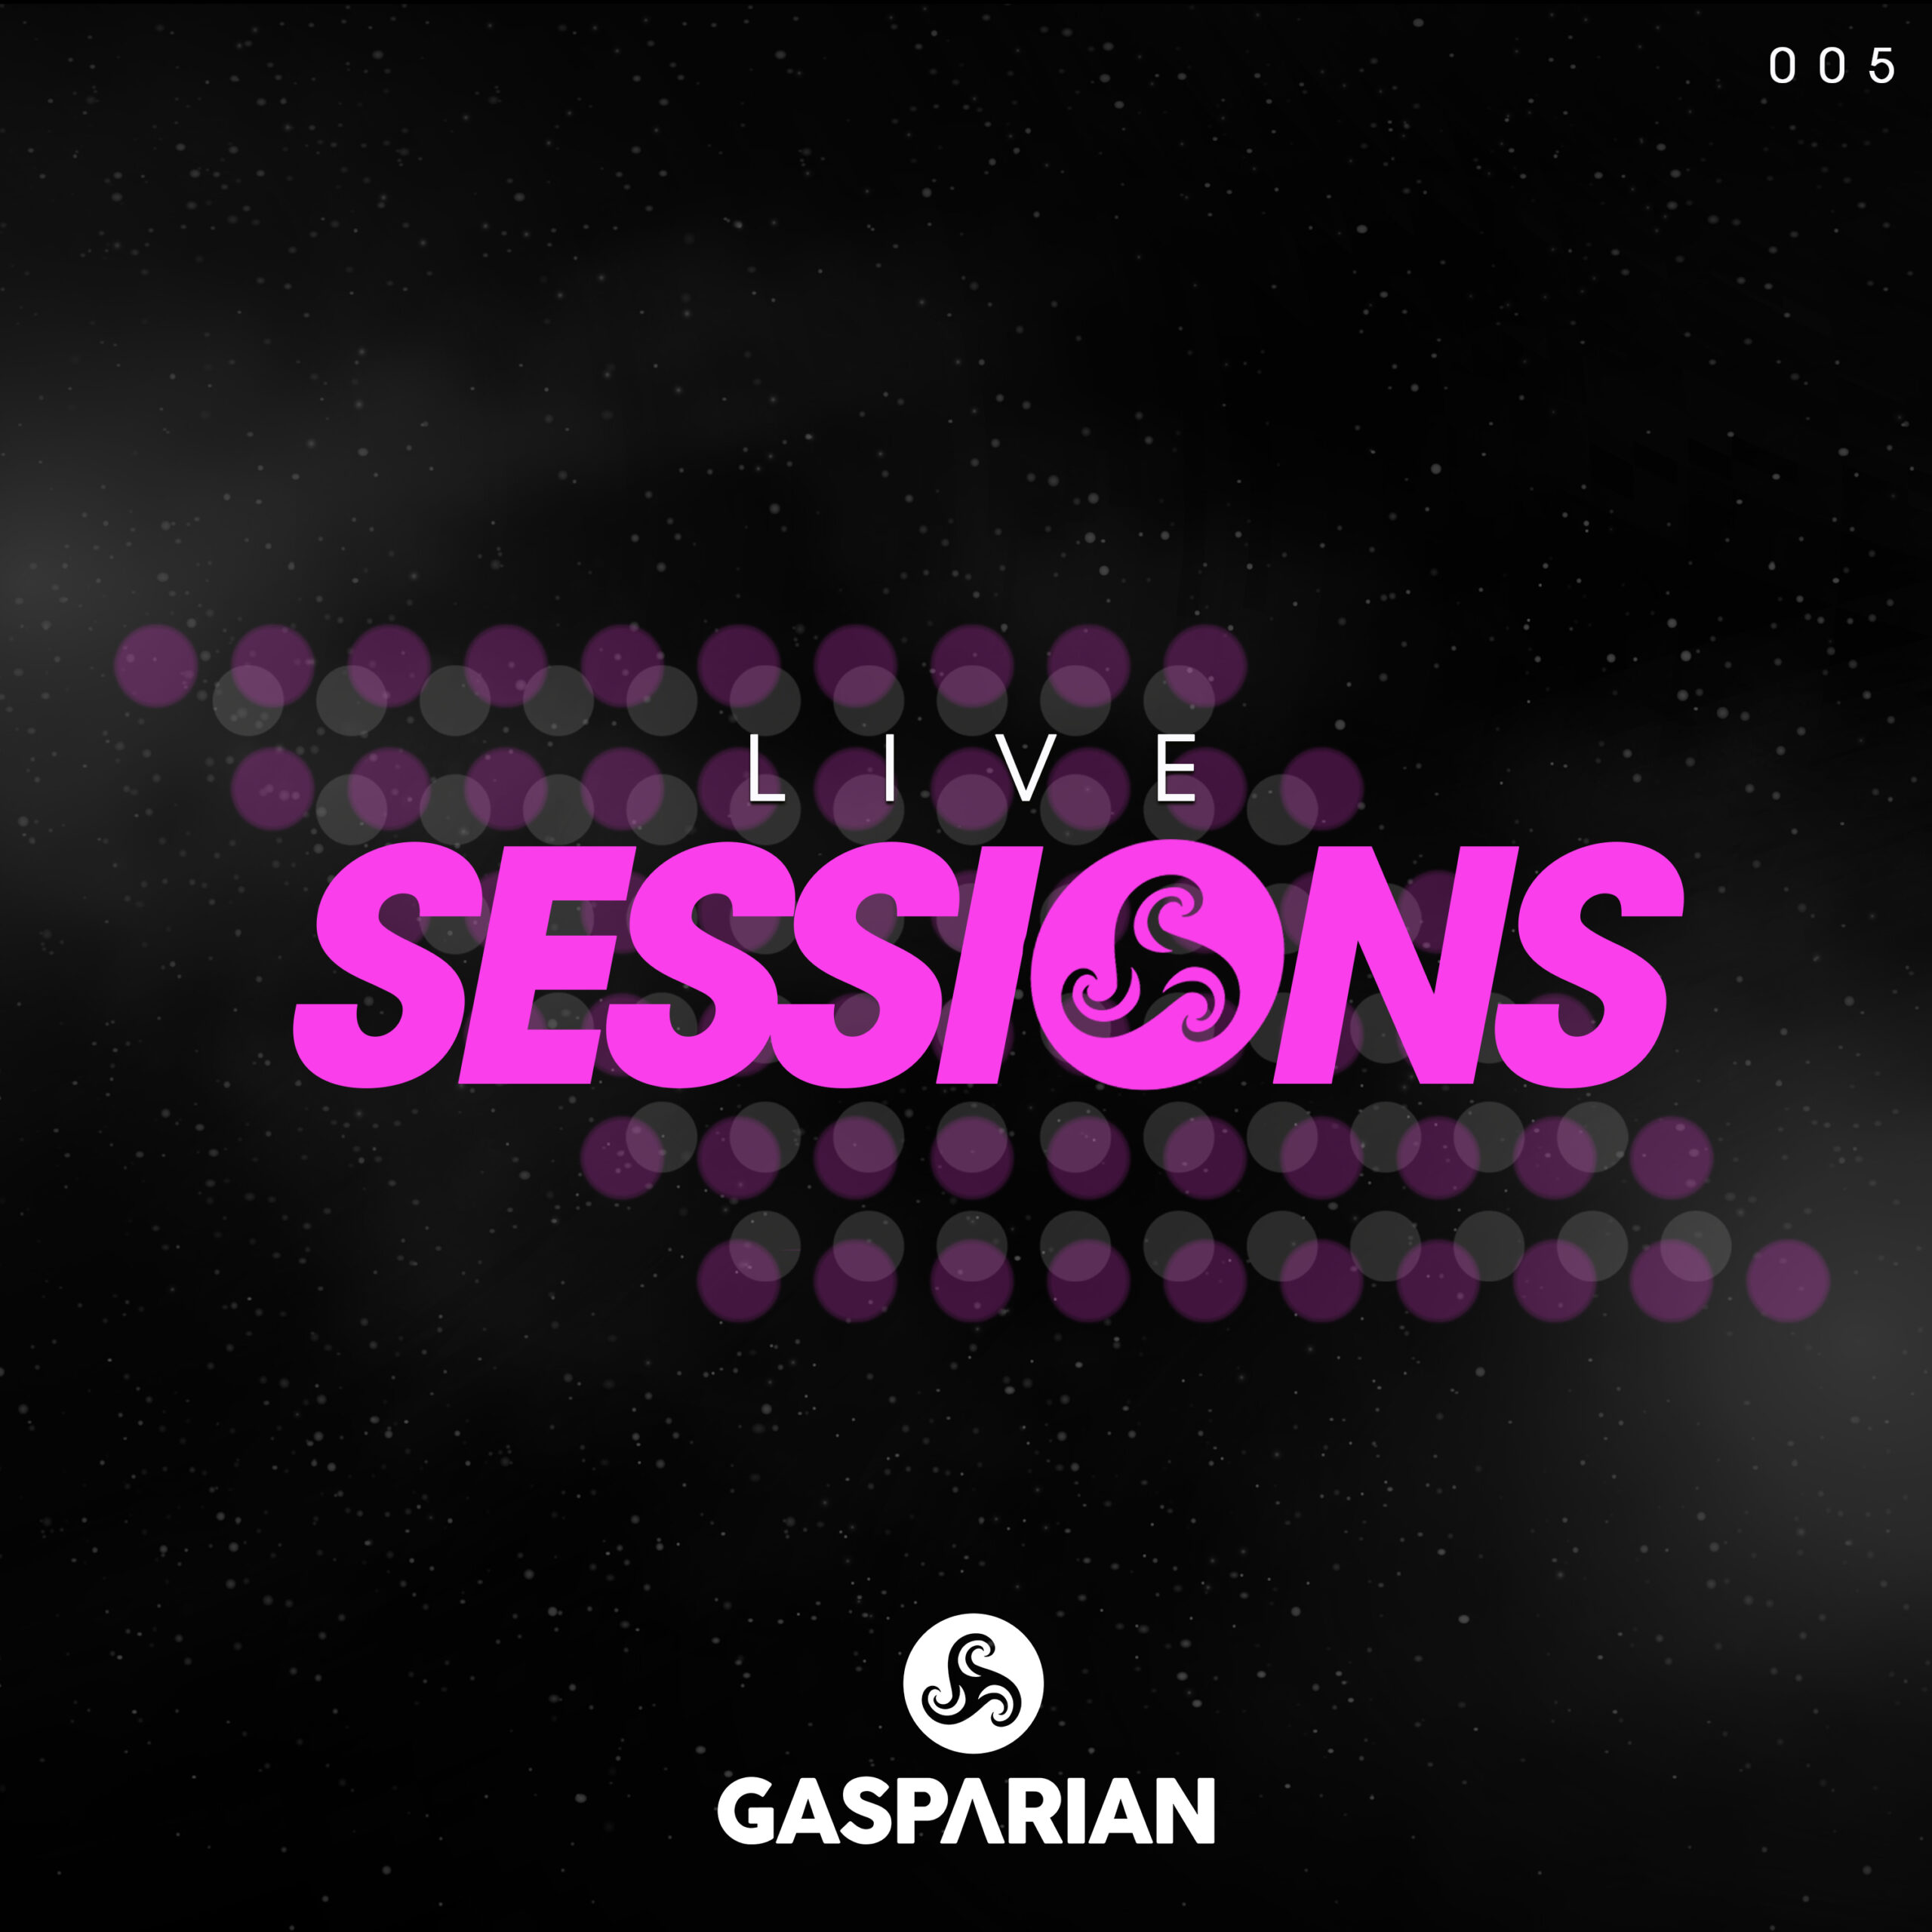 @Gasparian Live Sessions 005